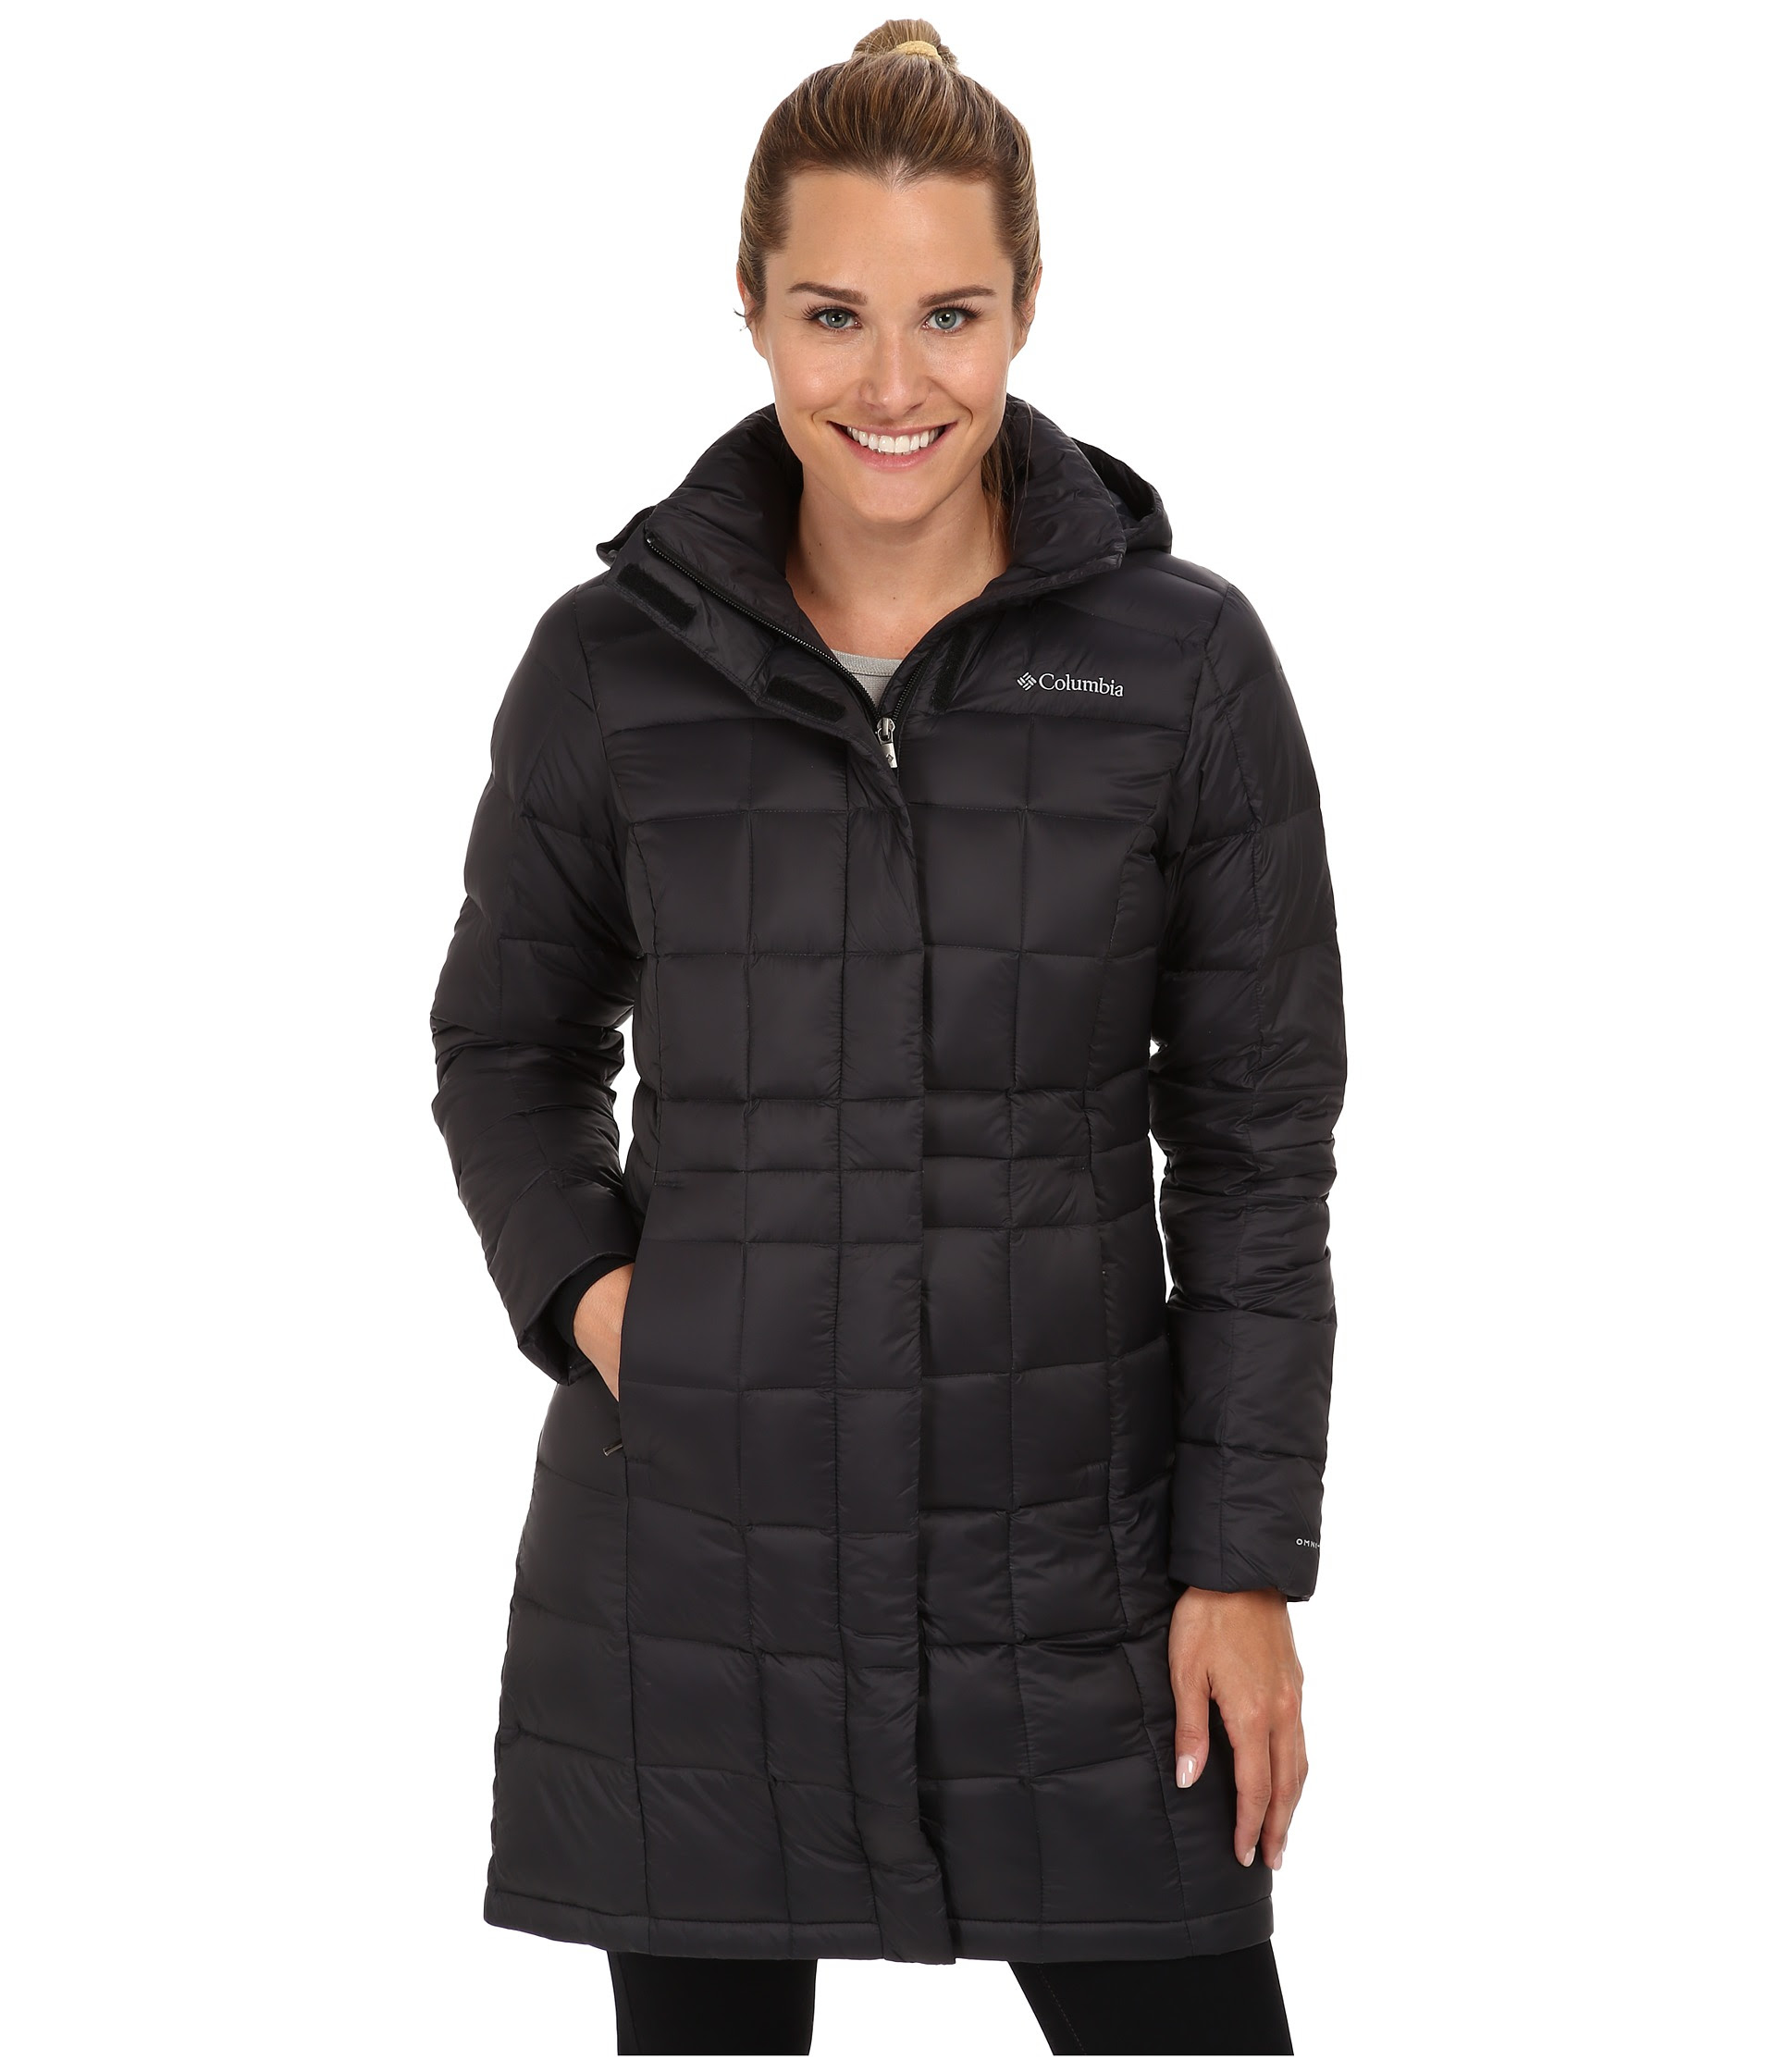 Lightweight for columbia for shoes quilted sale jackets women quality magazines clearance